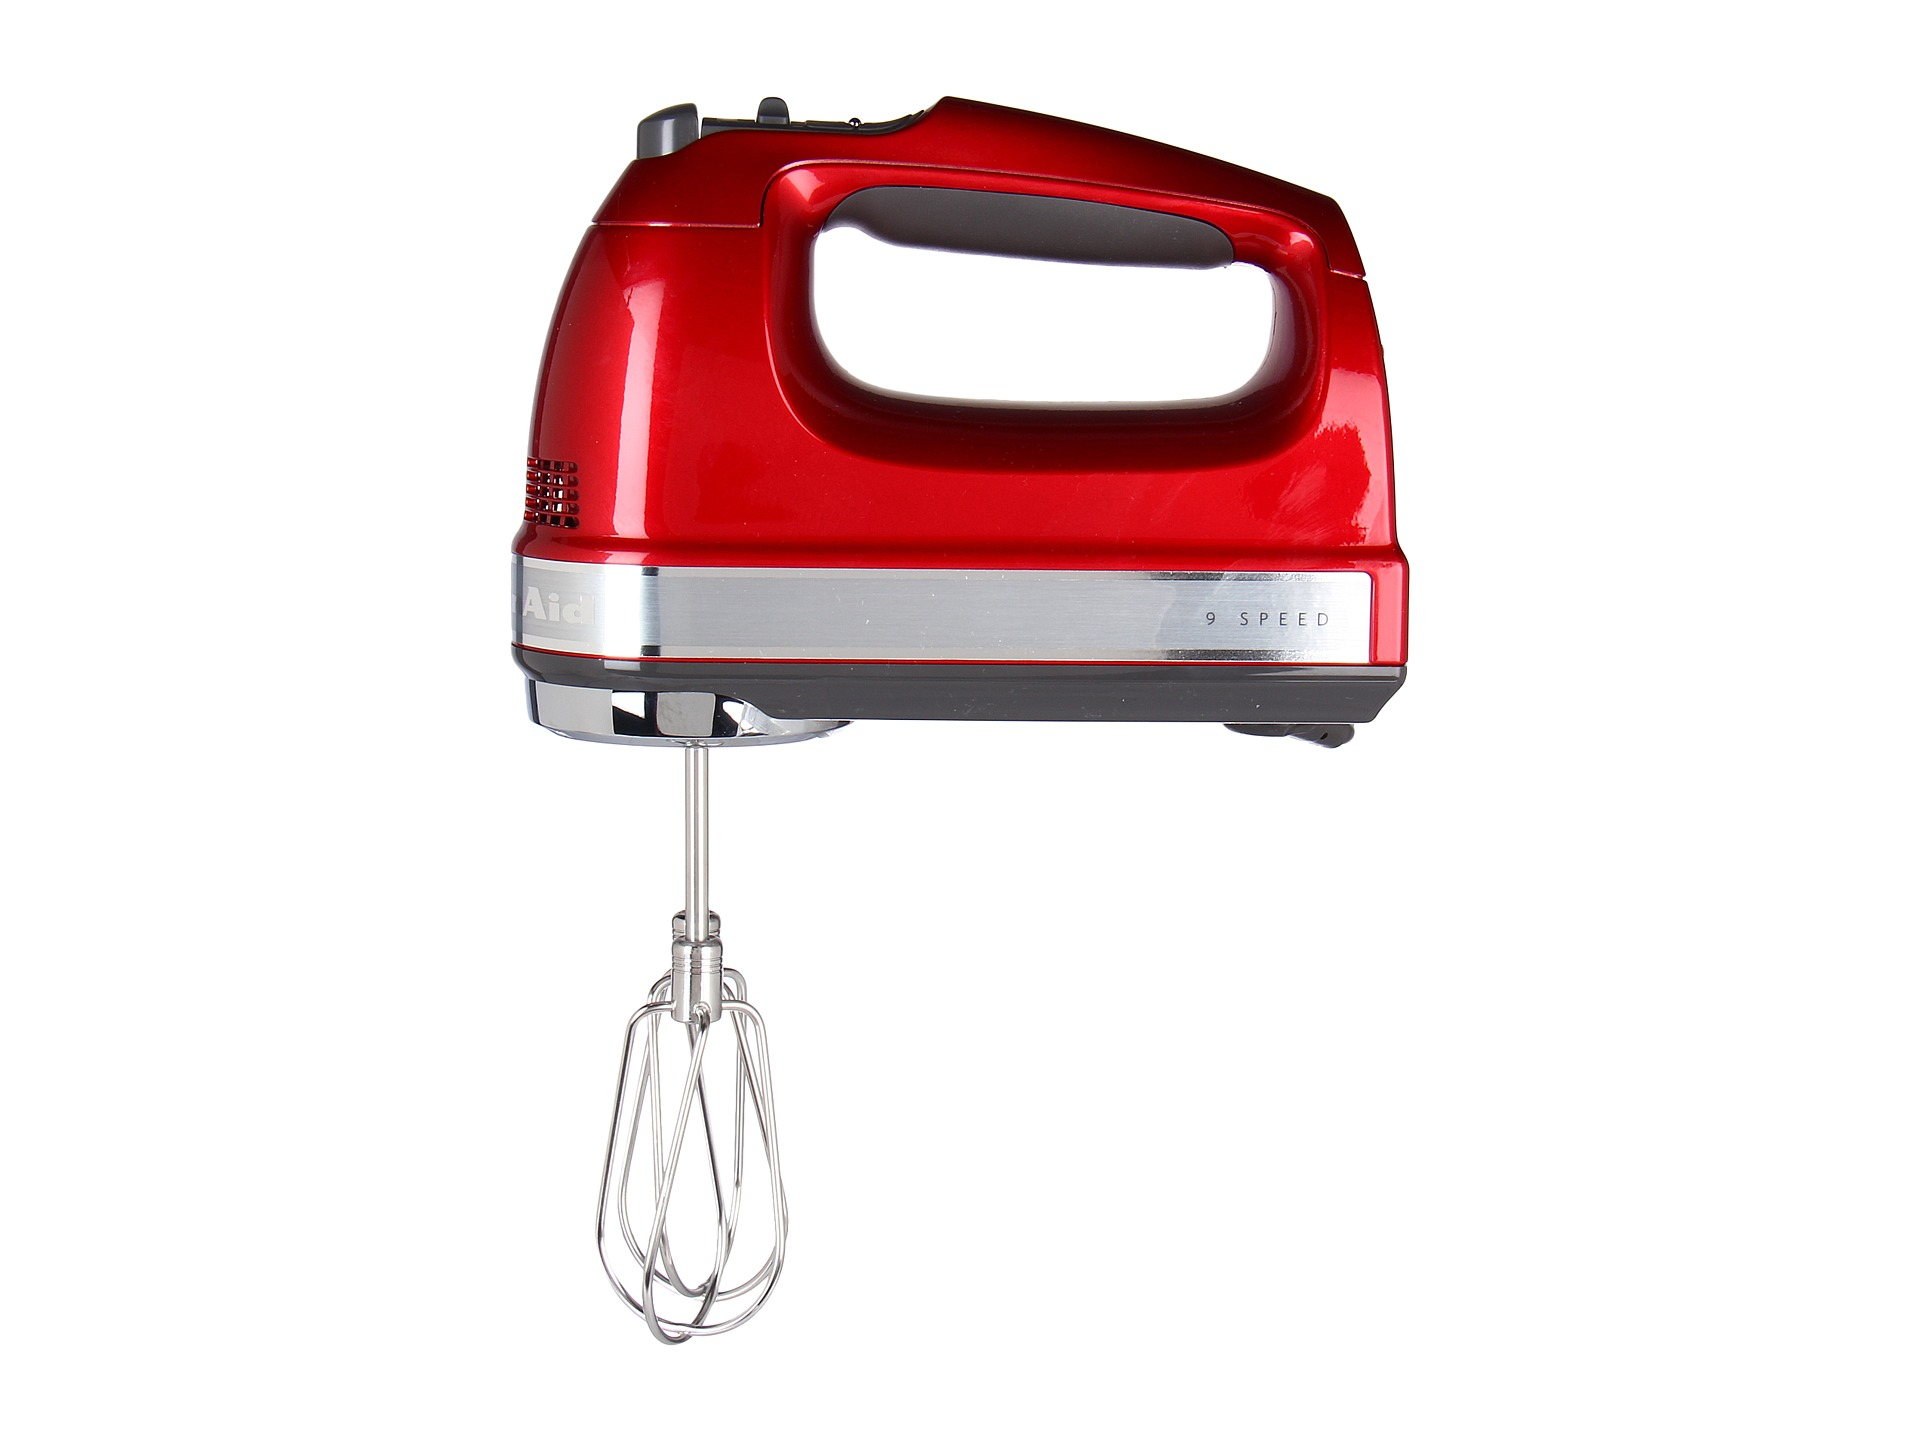 Kitchenaid Khm926 9 Speed Hand Mixer Candy Apple Shipped